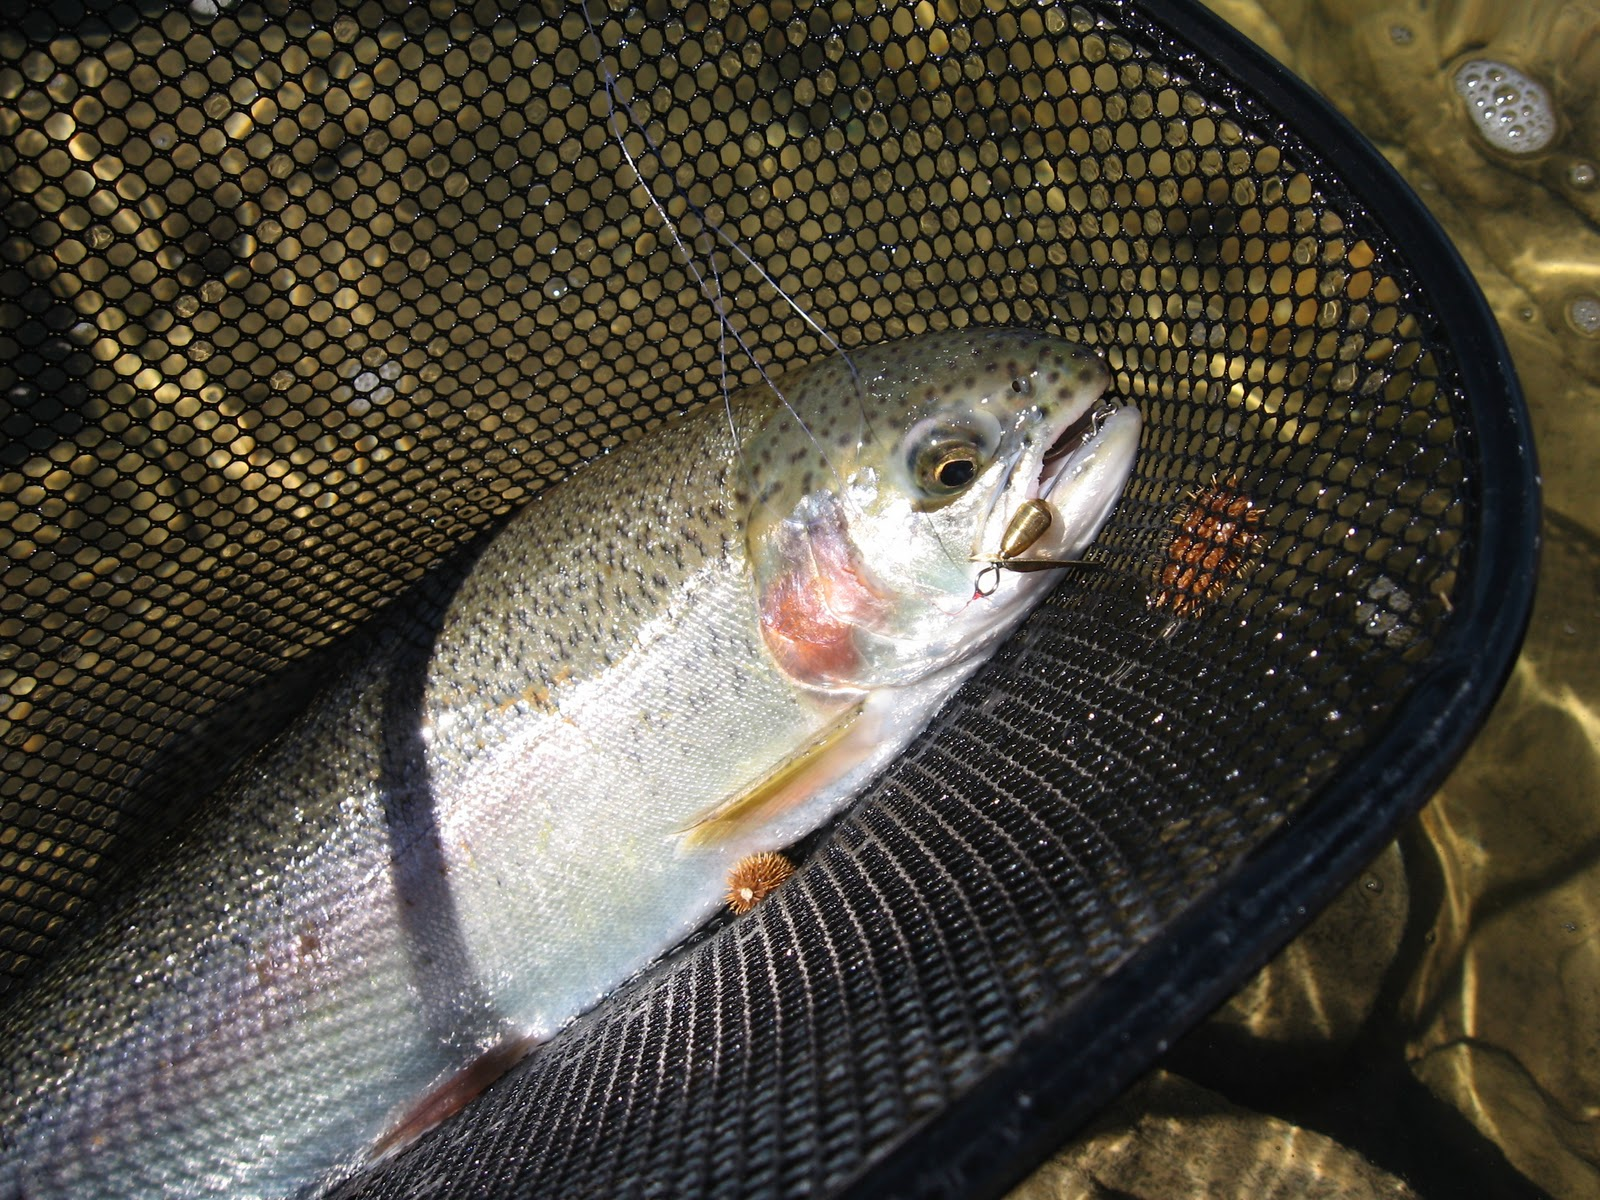 singles in trout lake Irish salmon and trout flies, dubbing, tackle and supplies.